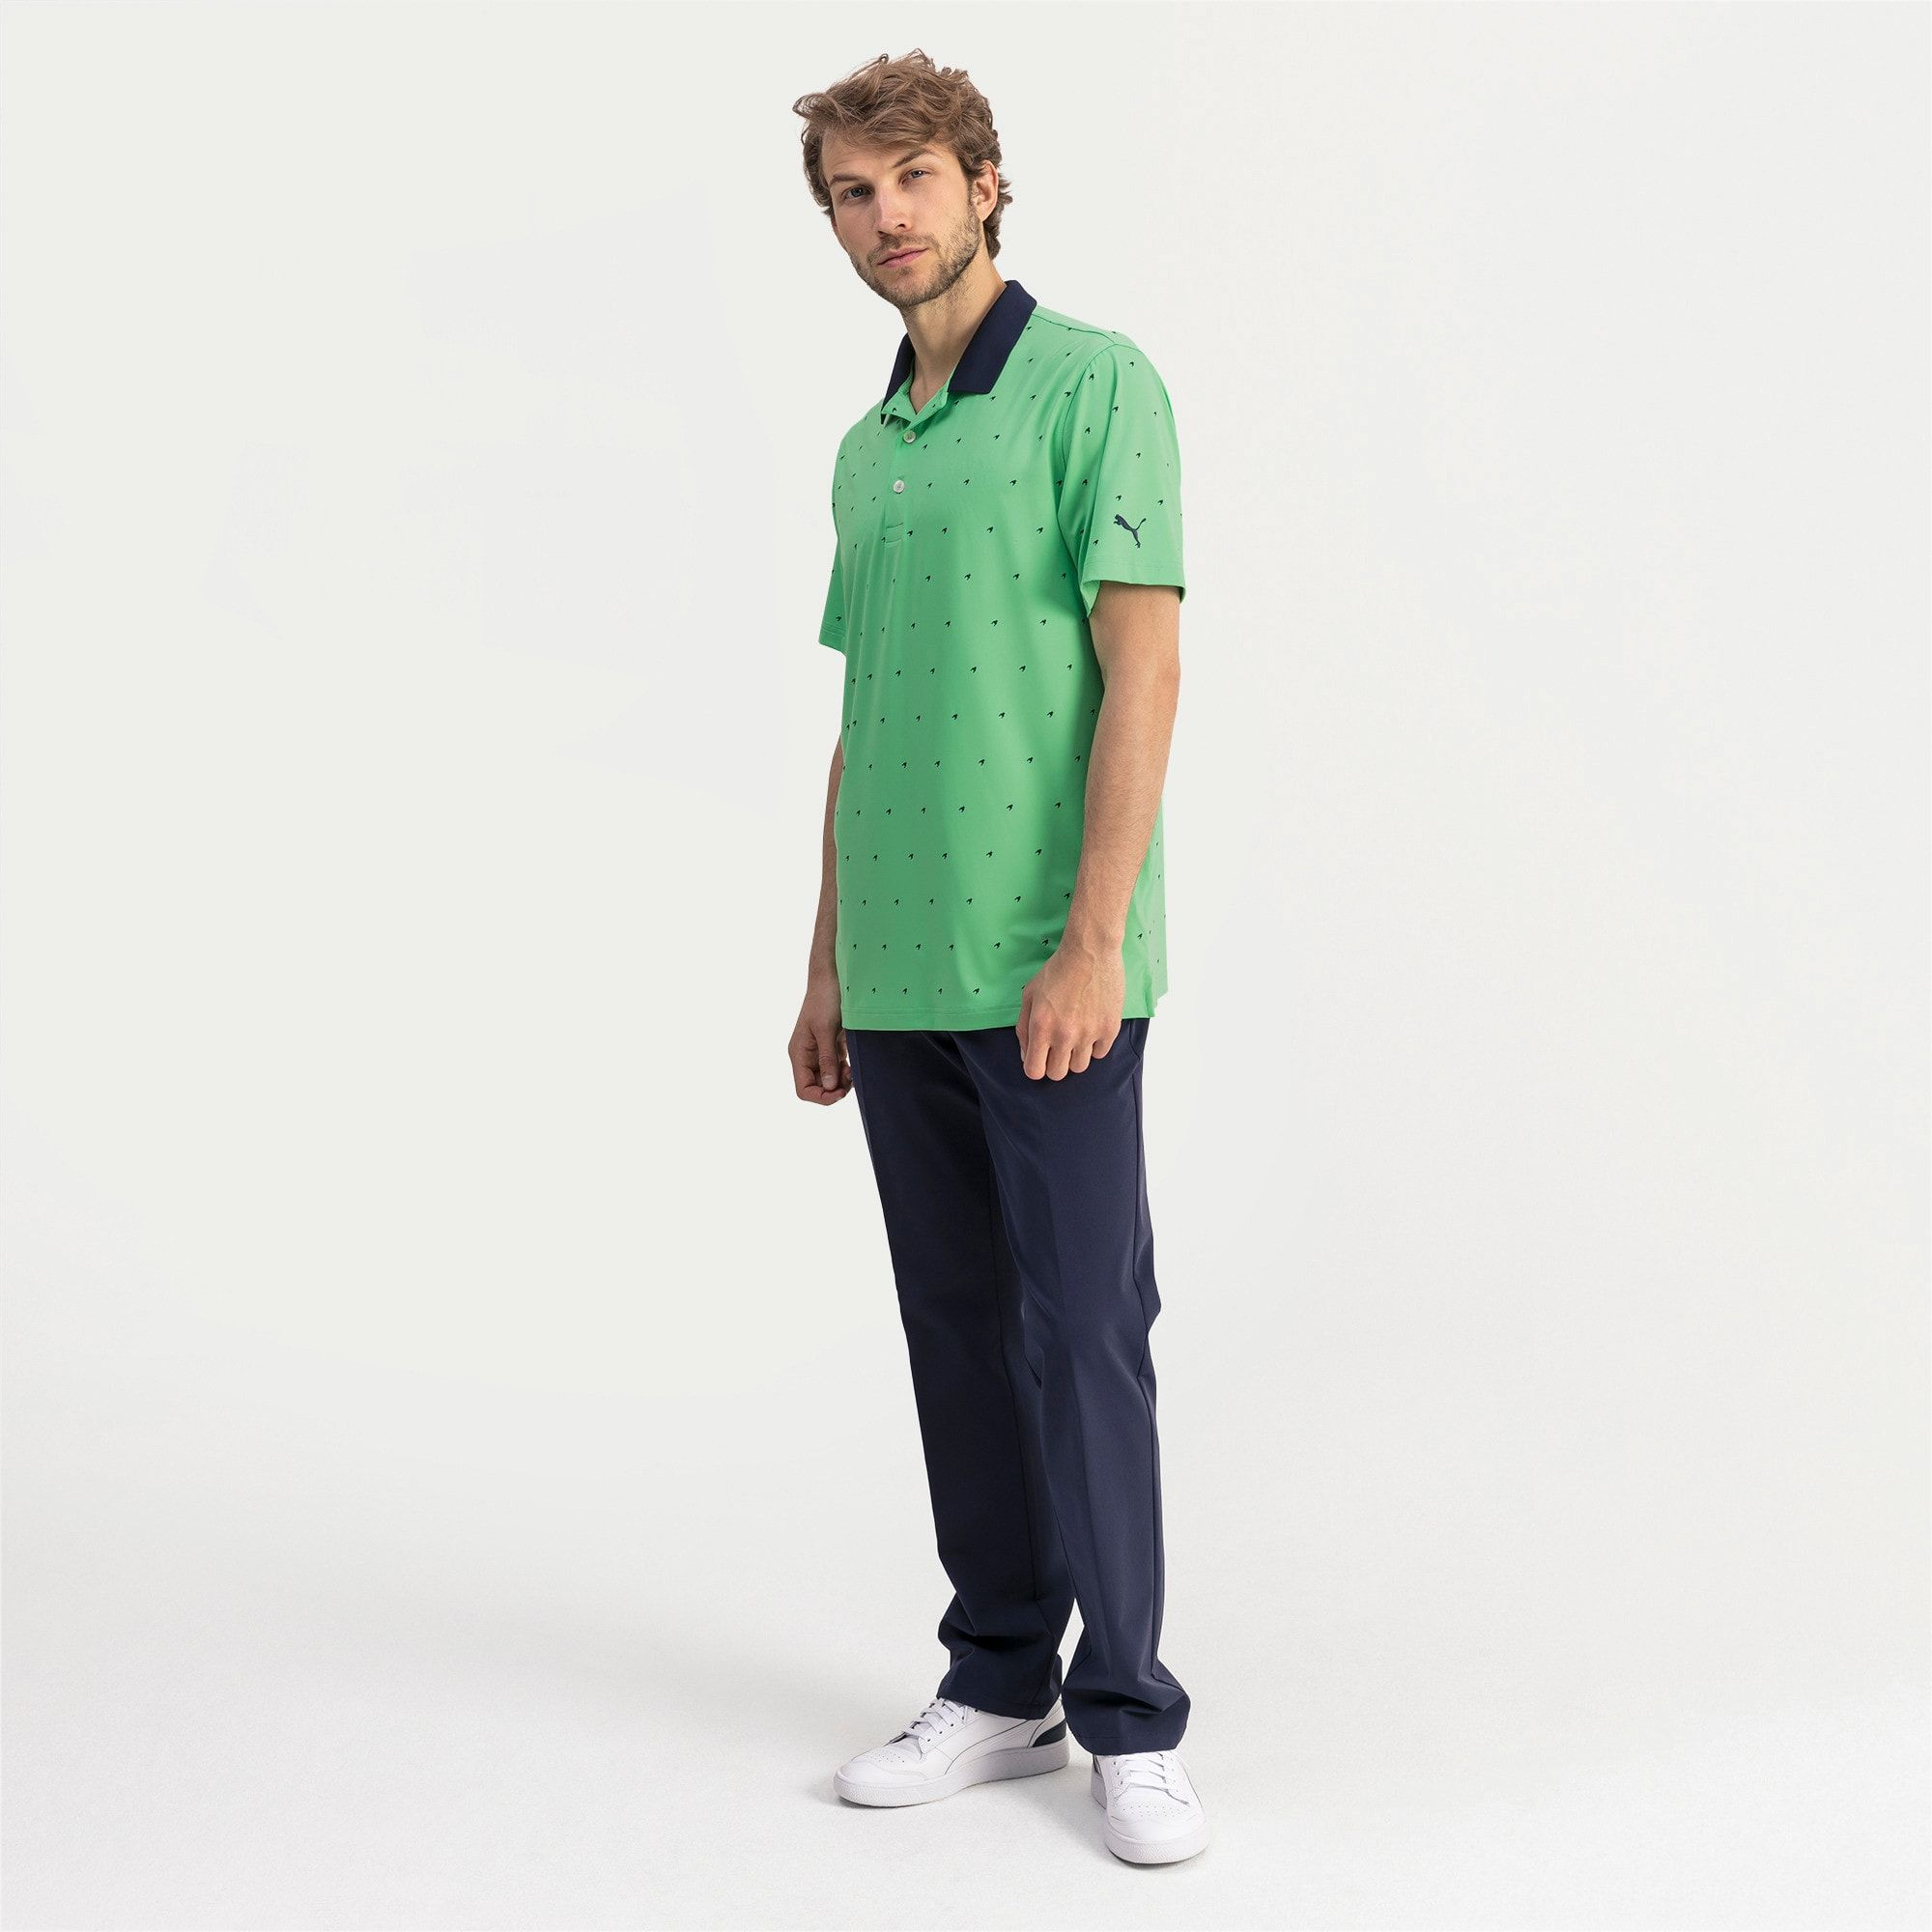 PUMA Skerries Men's Golf Polo Shirt, Irish Green, size 3X Large, Clothing